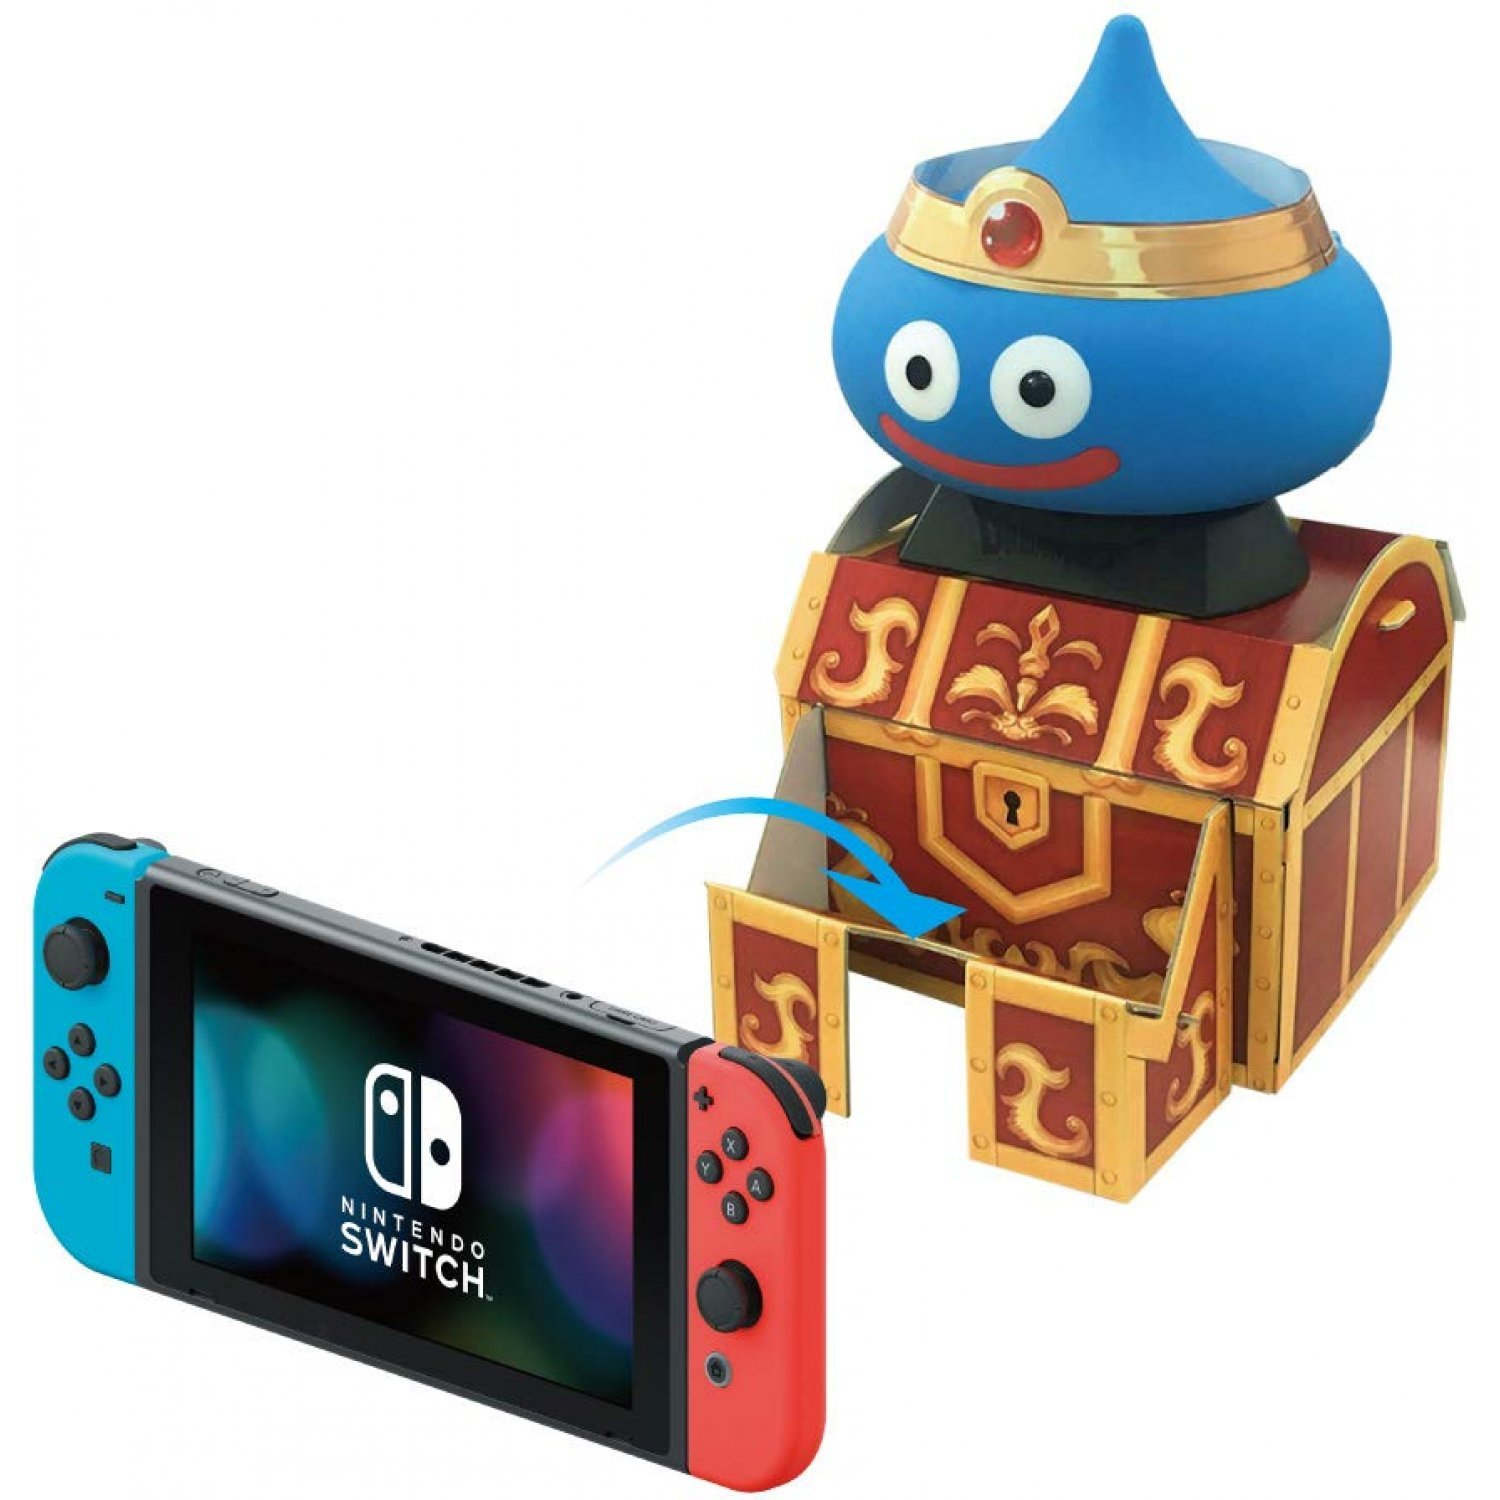 IMAGE(https://s.pacn.ws/1500/x5/dragon-quest-slime-wireless-controller-for-nintendo-switch-596837.3.jpg?pt0y3u)